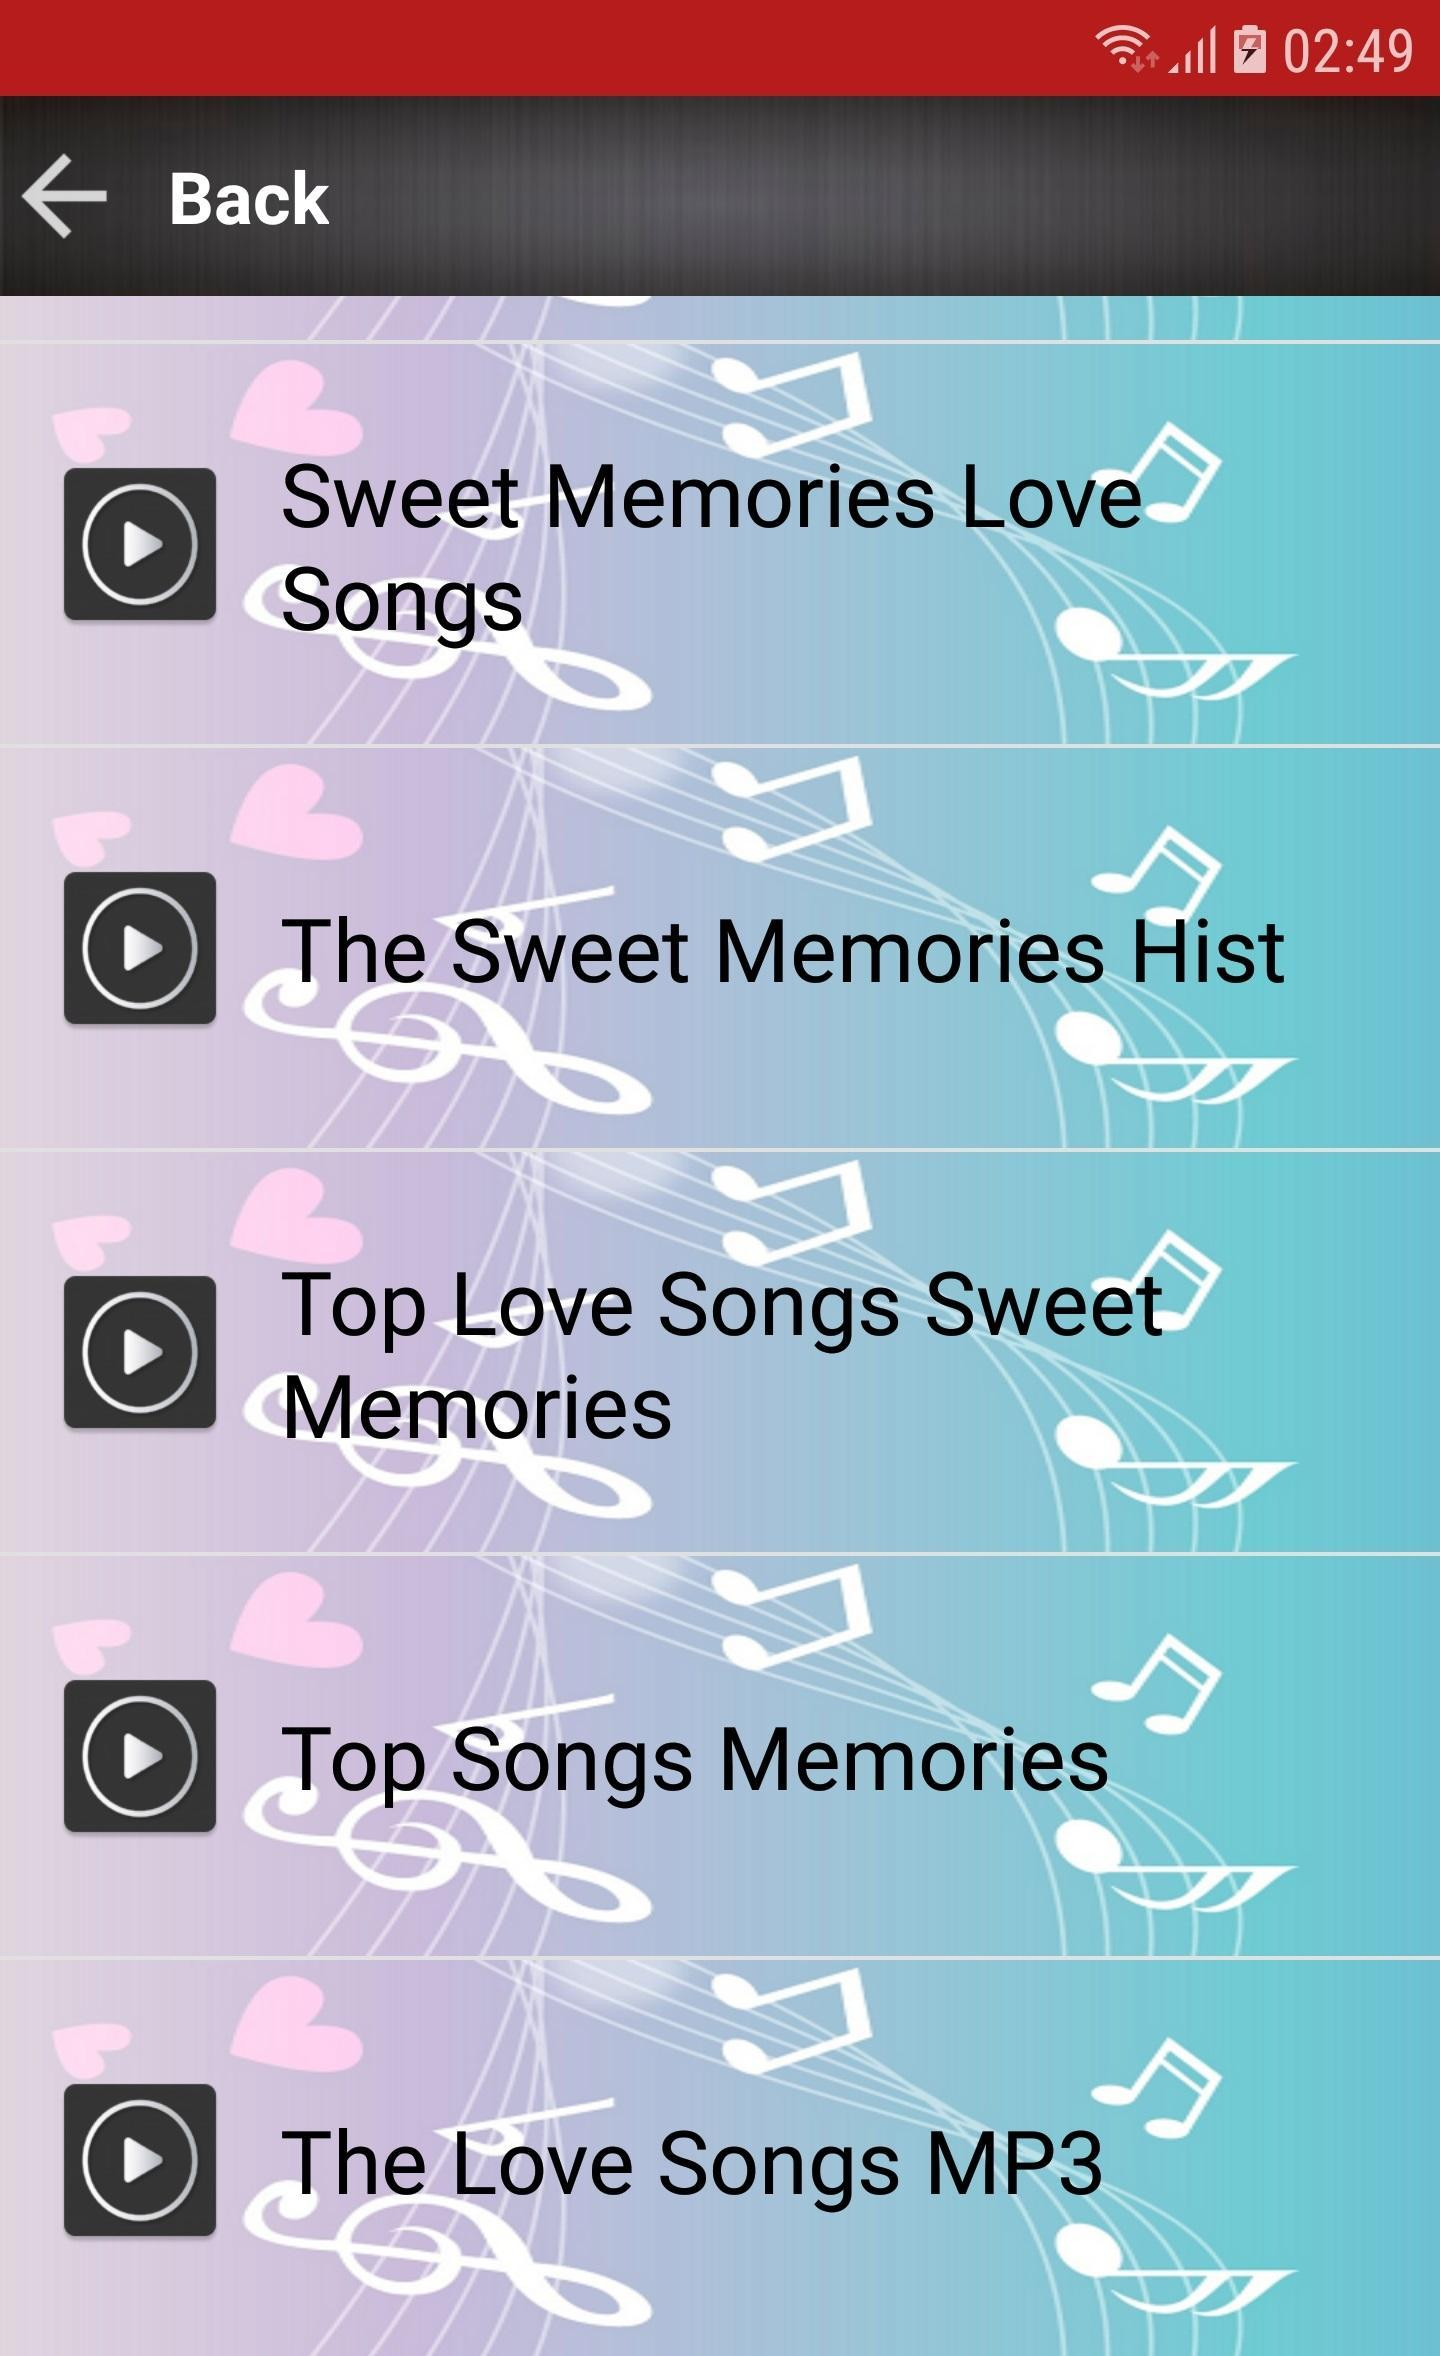 Love Songs Sweet Memories 80s 90s for Android - APK Download